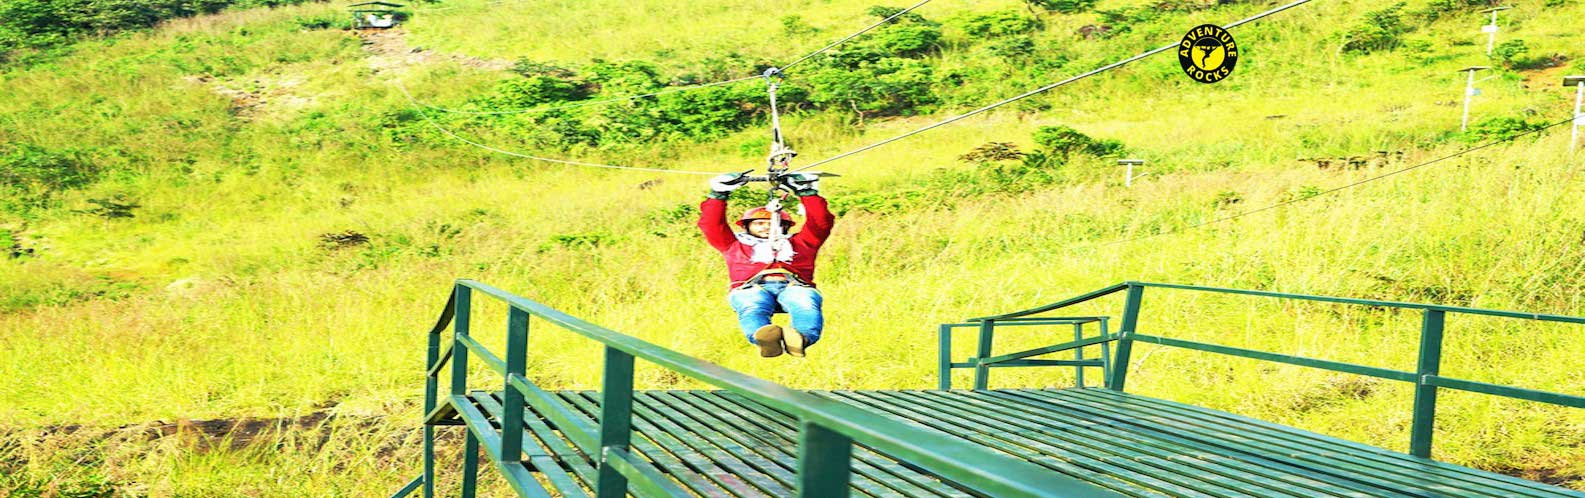 Zip Line Manufacturers in Firozabad